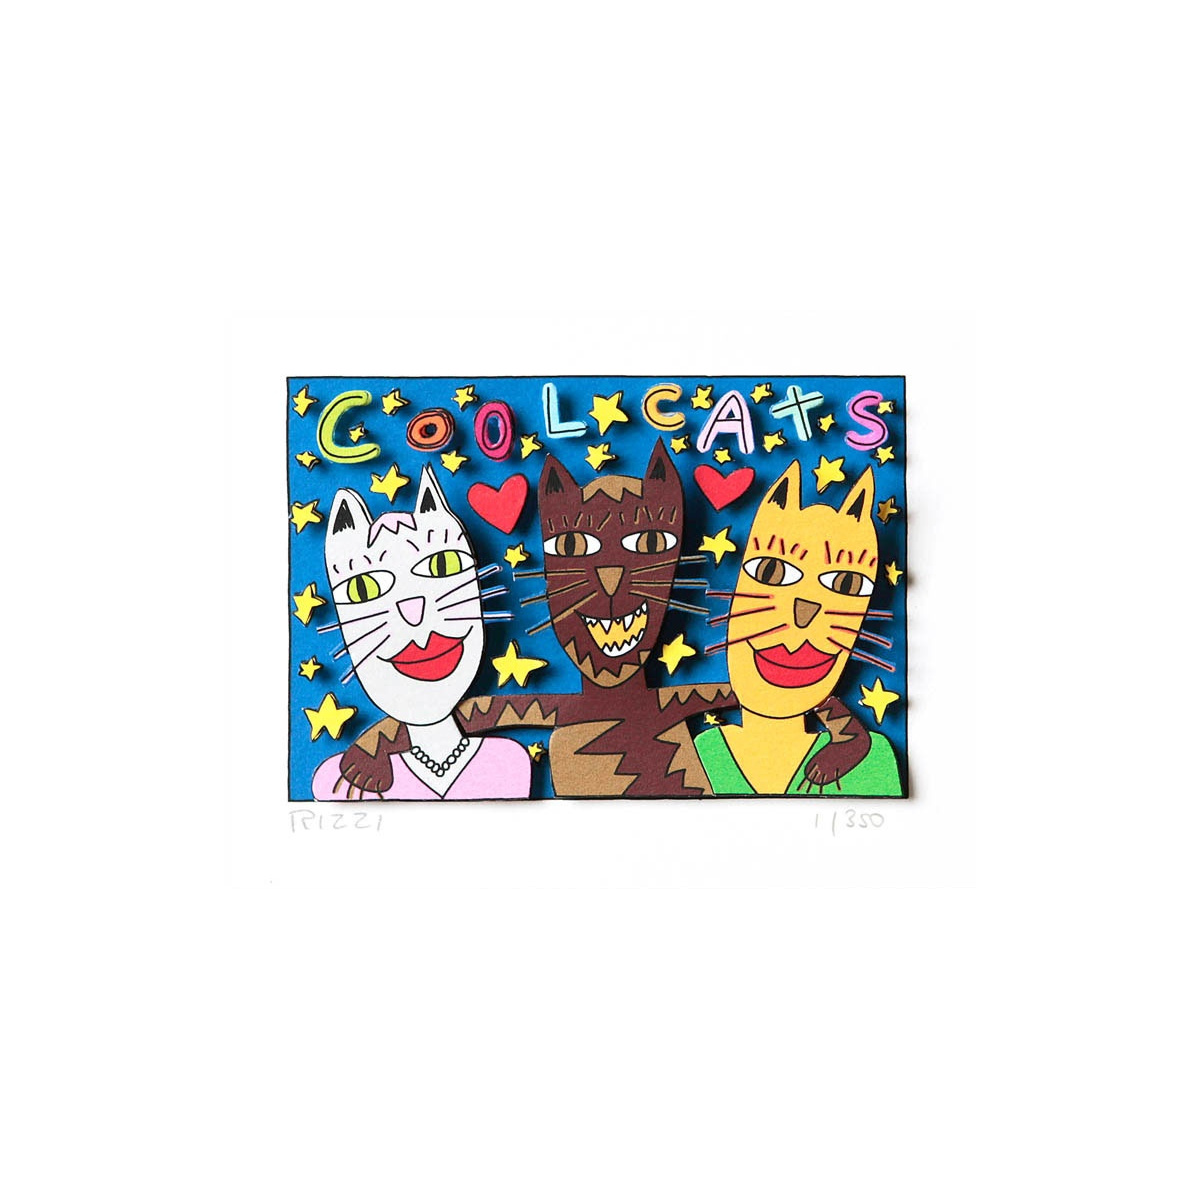 Cool cats von James Rizzi